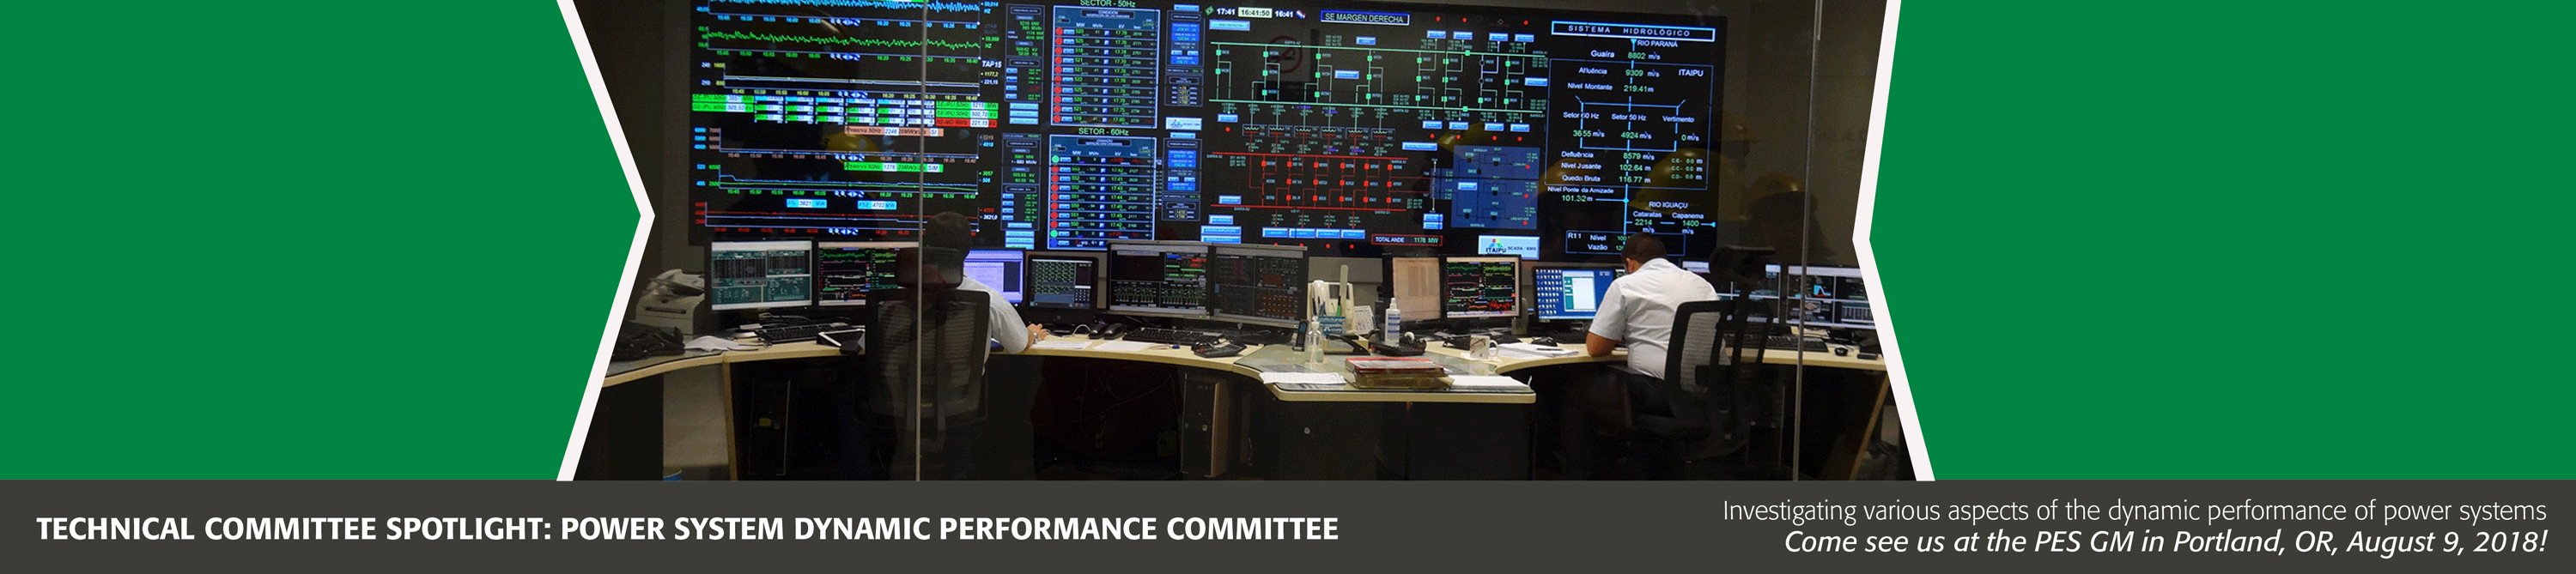 Power System Dynamic Performance Committee